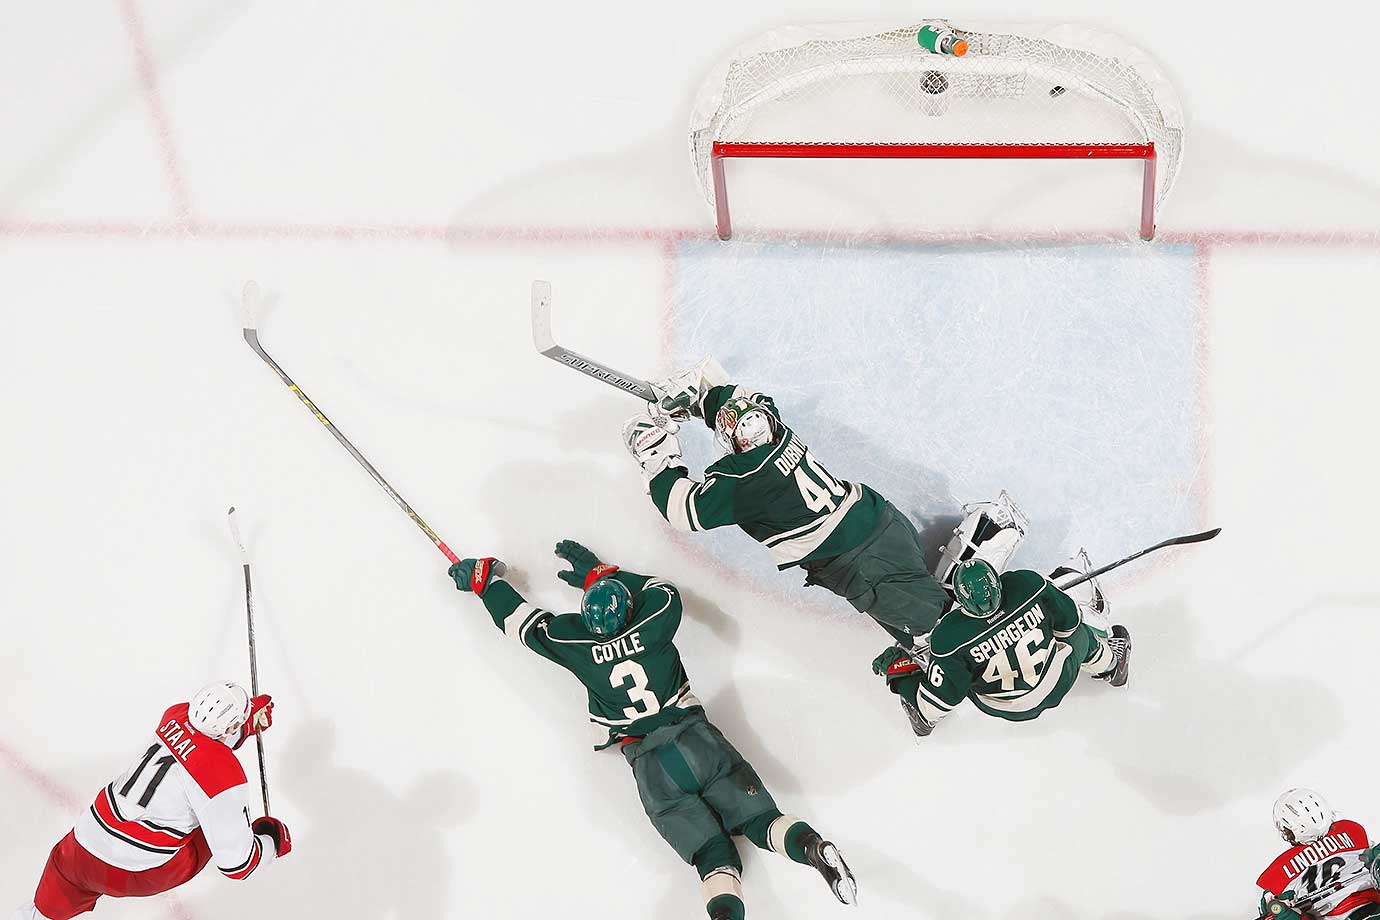 Jordan Staal of the Carolina Hurricanes scores a goal with Charlie Coyle, Devan Dubnyk and Jared Spurgeon of Minnesota defending.